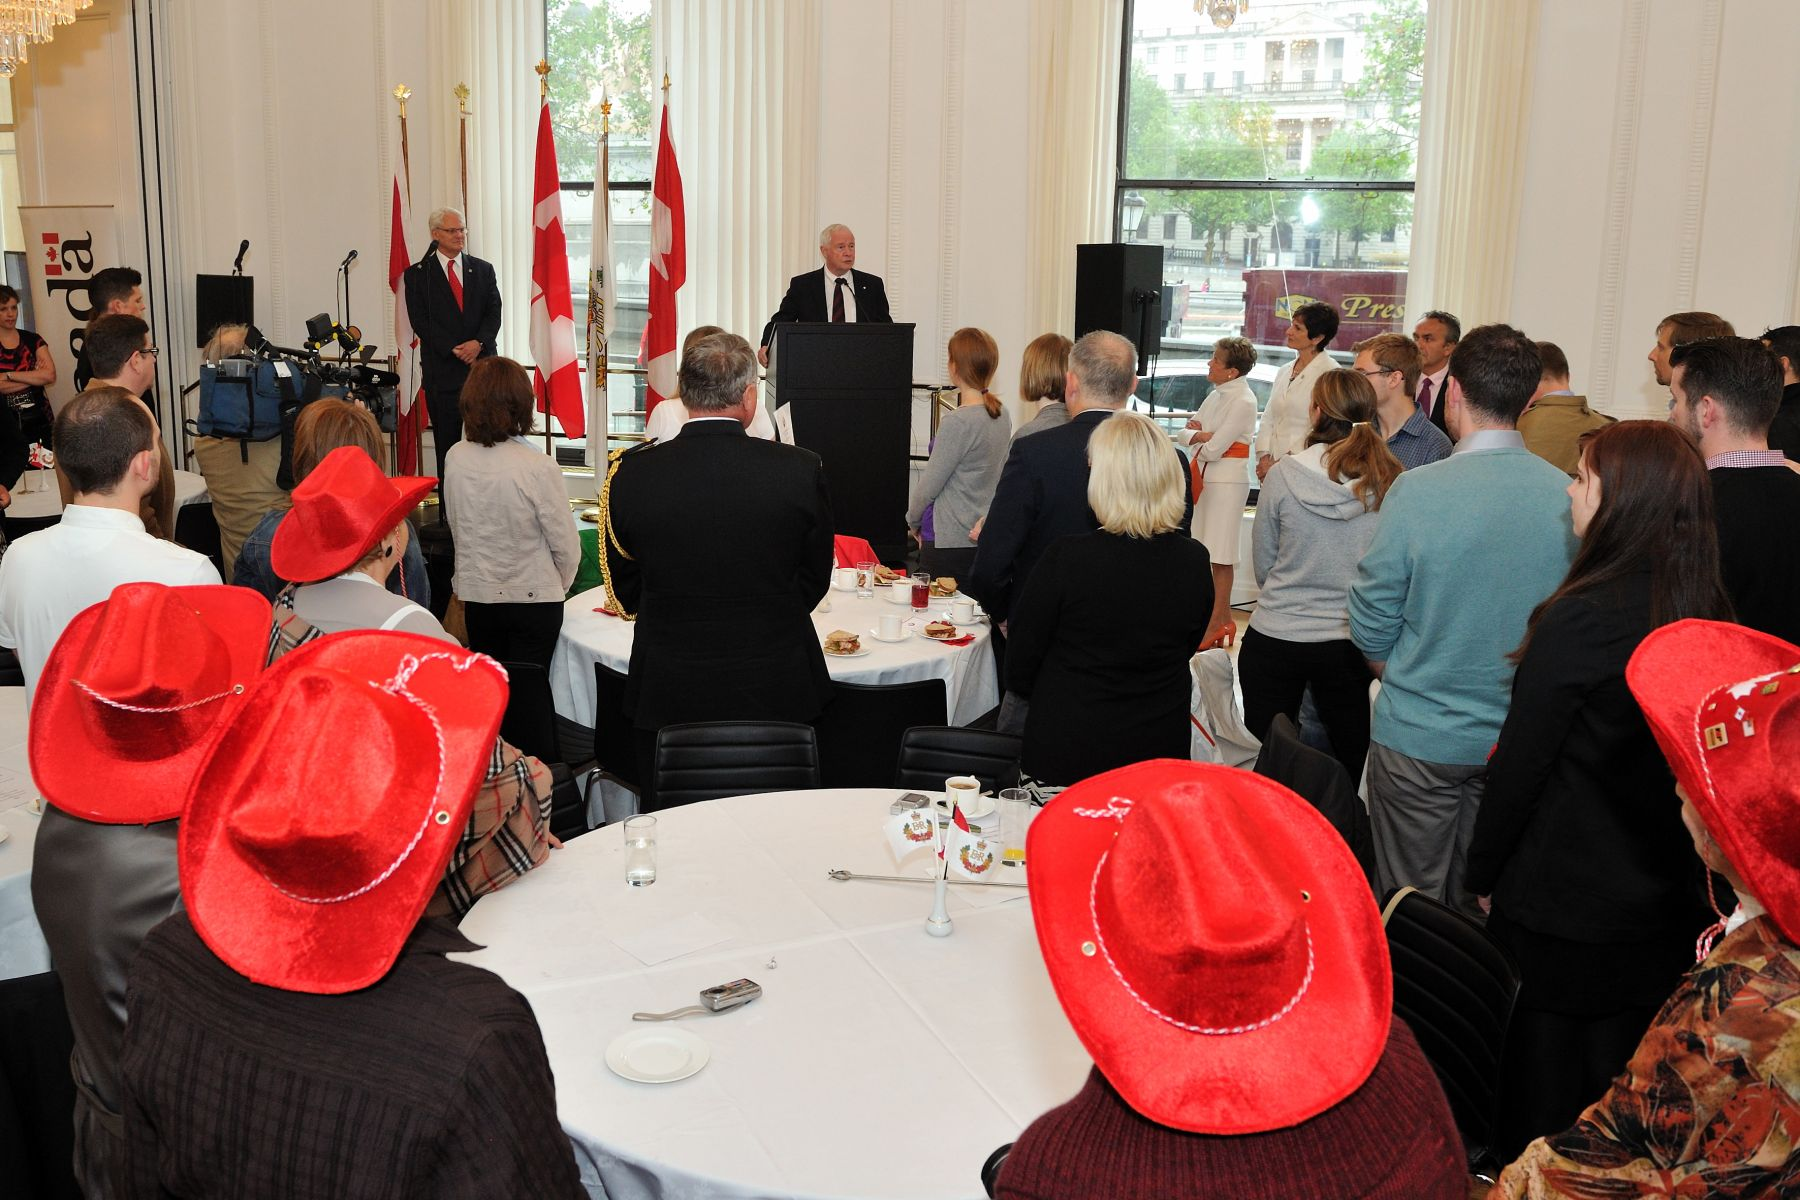 Their Excellencies are in London, England to represent their fellow Canadians and take part in The Central Weekend to celebrate The Queen's Diamond Jubilee. They participated in a luncheon with London's Canadian community at Canada House as part of The Big Jubilee Lunch.